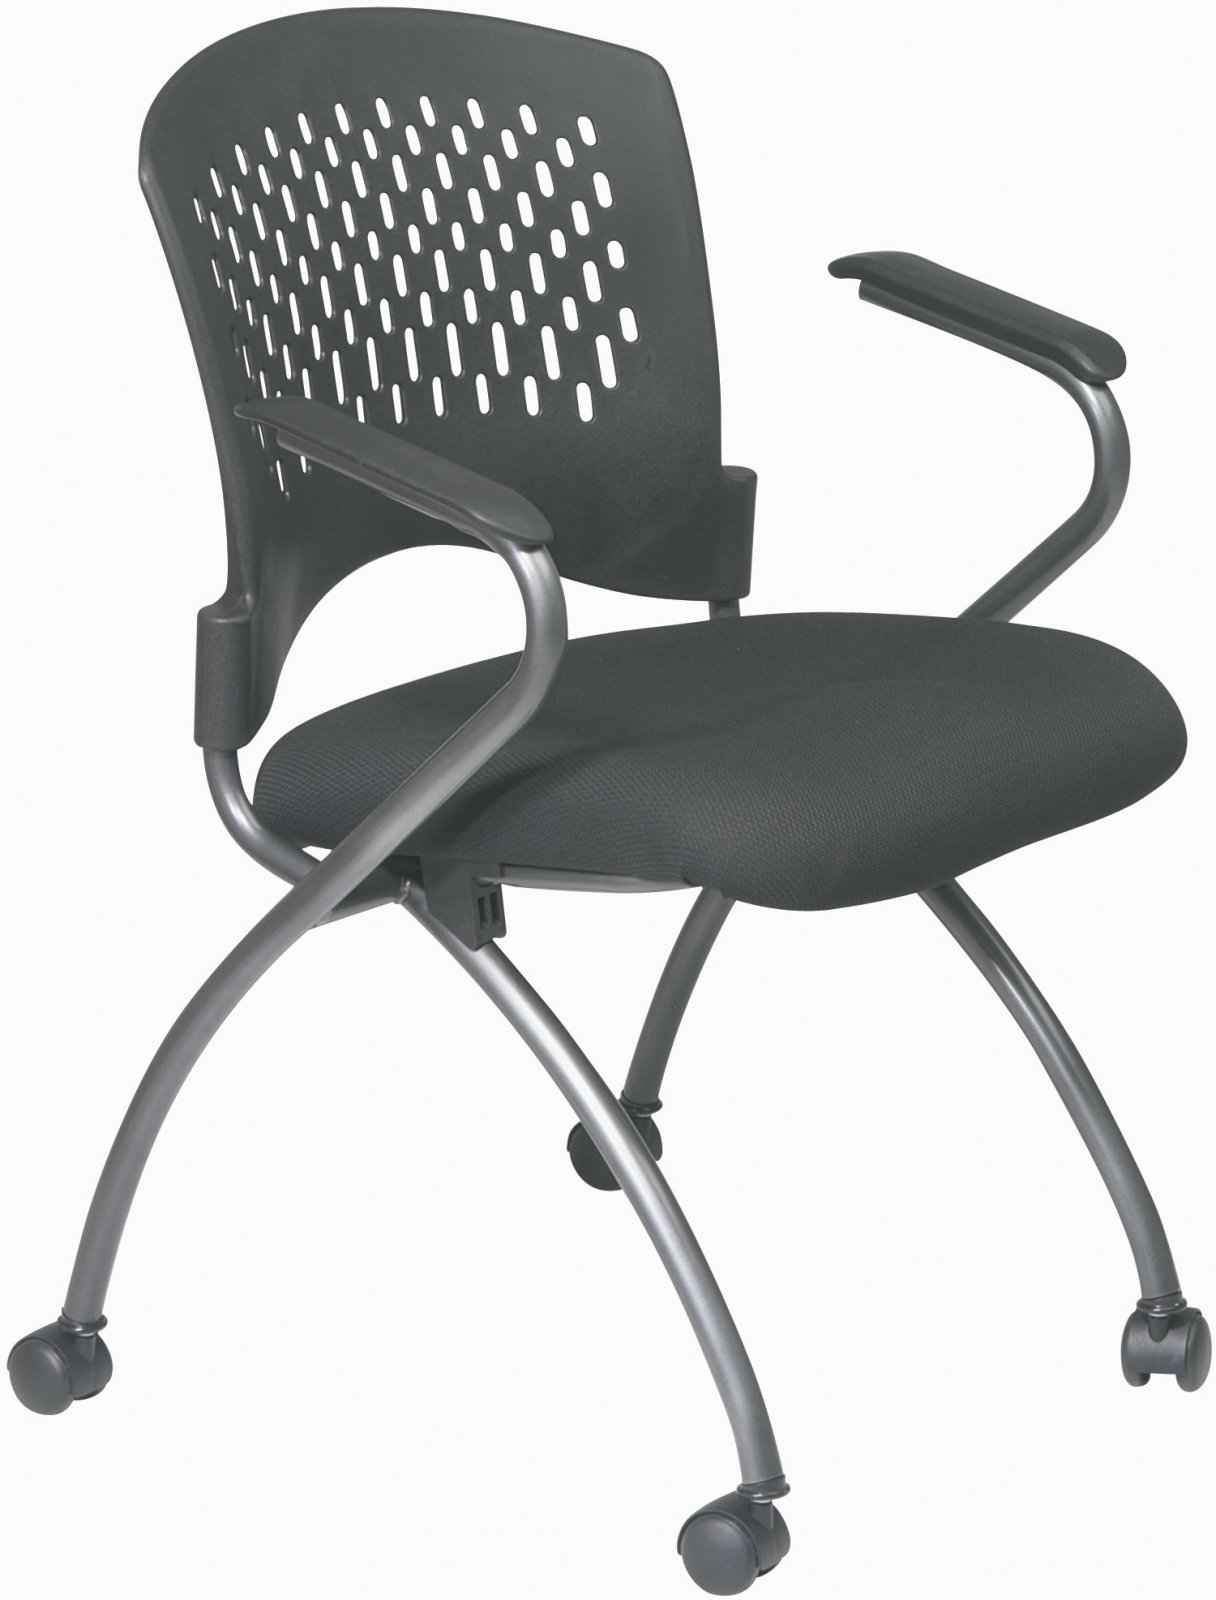 Foldable Office Chair Folding Office Chair Advantage